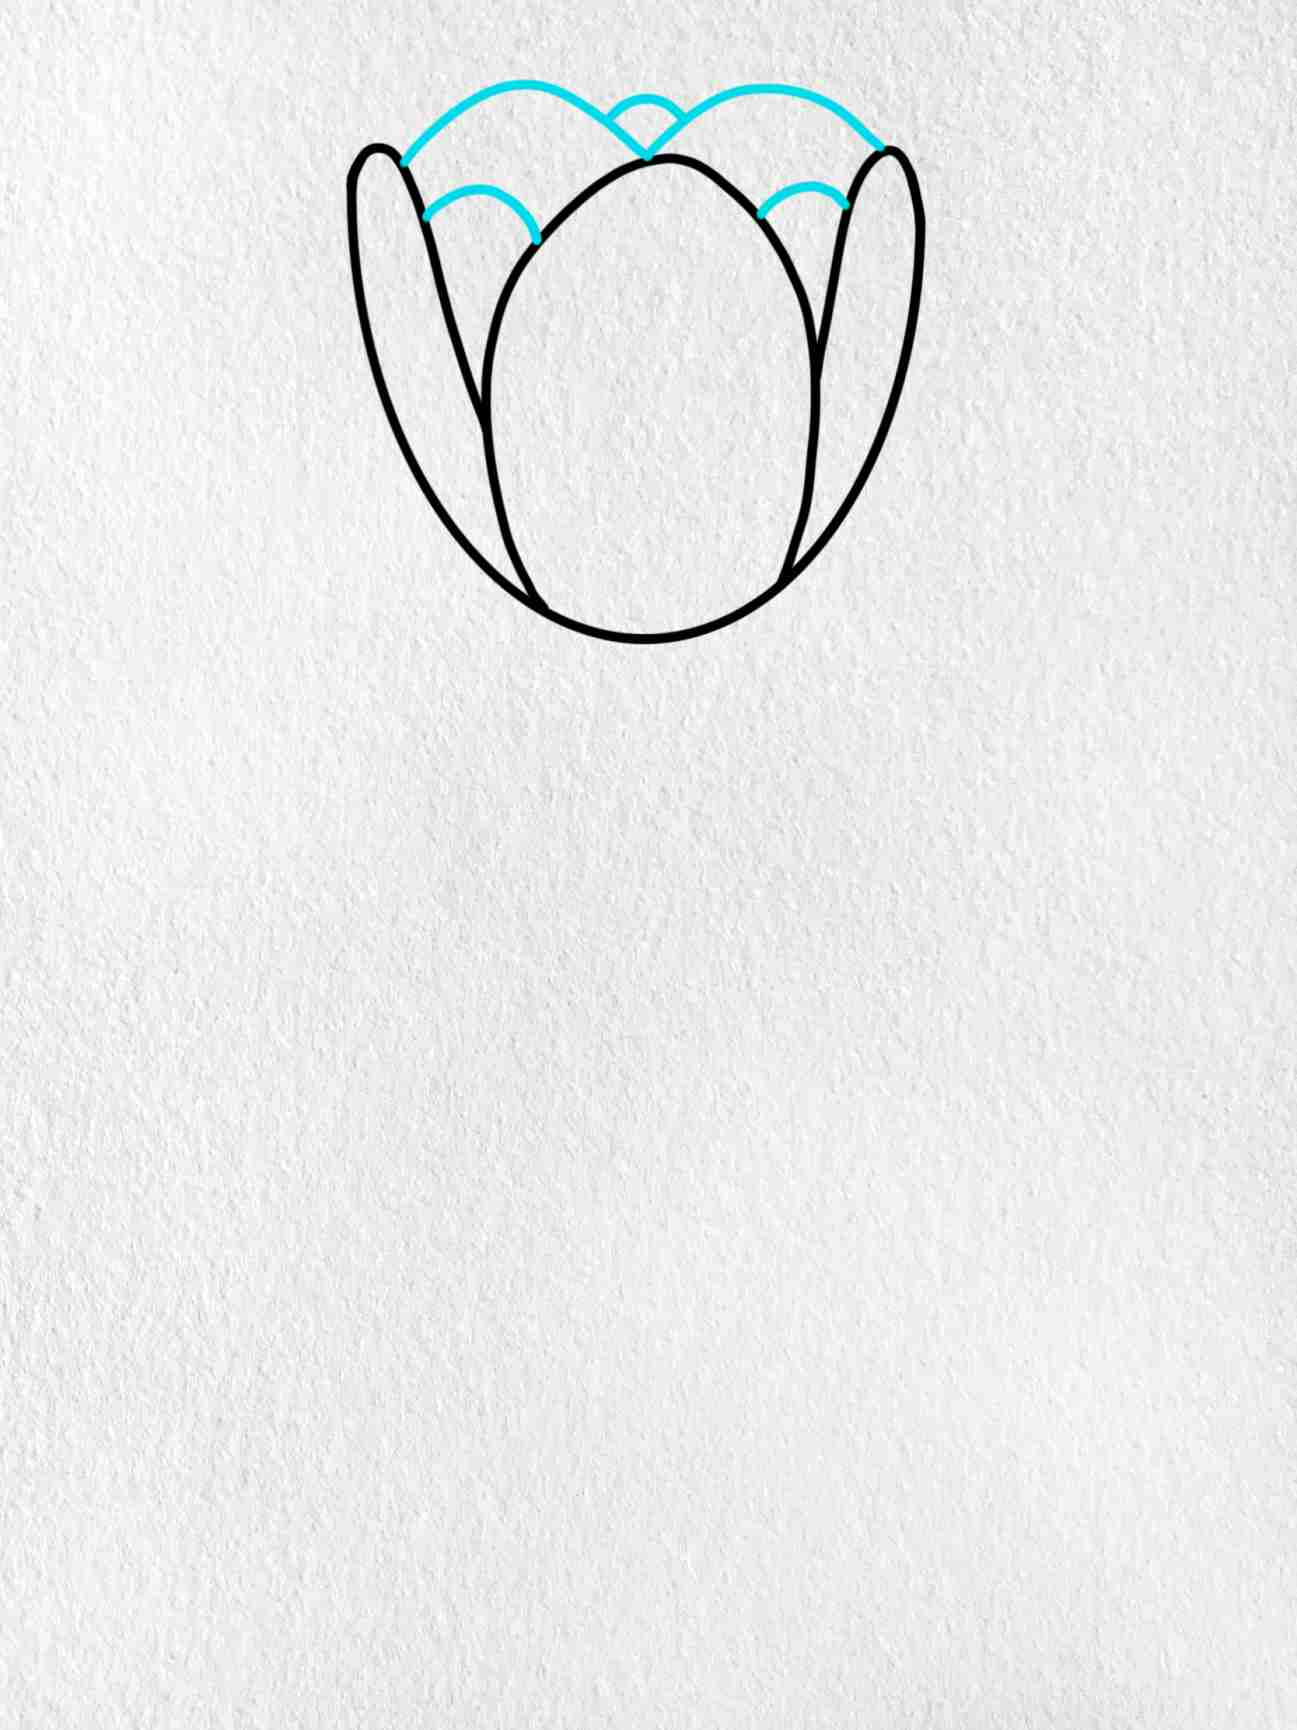 How To Draw A Tulip: Step 3